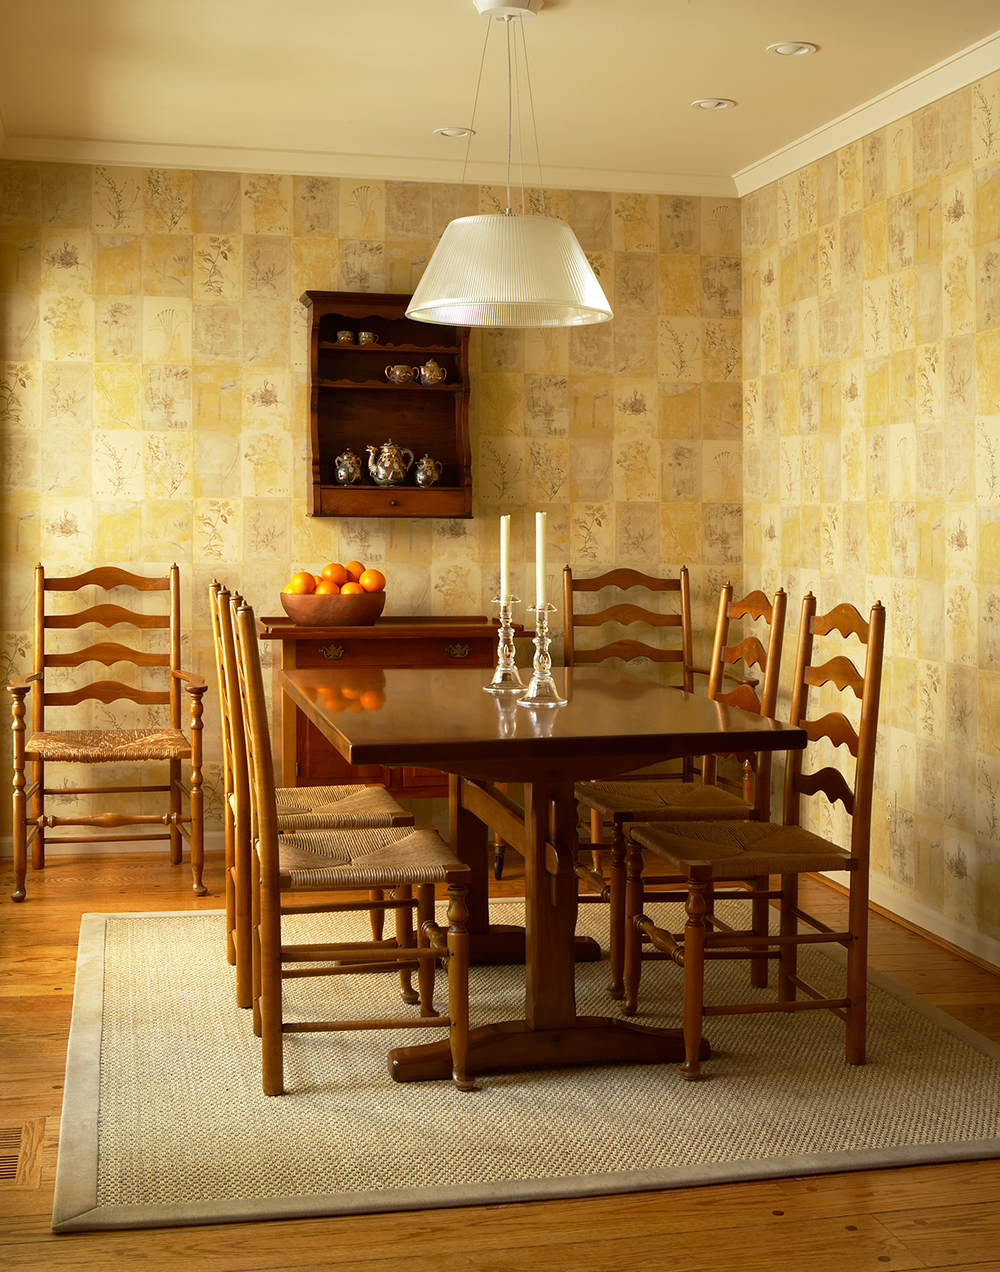 This breakfast nook is a study in simplicity, and how traditional and contemporary relate. Our clients loved their shaker table and chairs, and were thrilled when we said they worked in the new design. This room sits adjacent to the garden, so we had the walls covered in a block-printed botanical pattern, and then hung the very contemporary glass light over the table. The look is warm, traditional, and modern at the same time. Photo by Beth Singer.